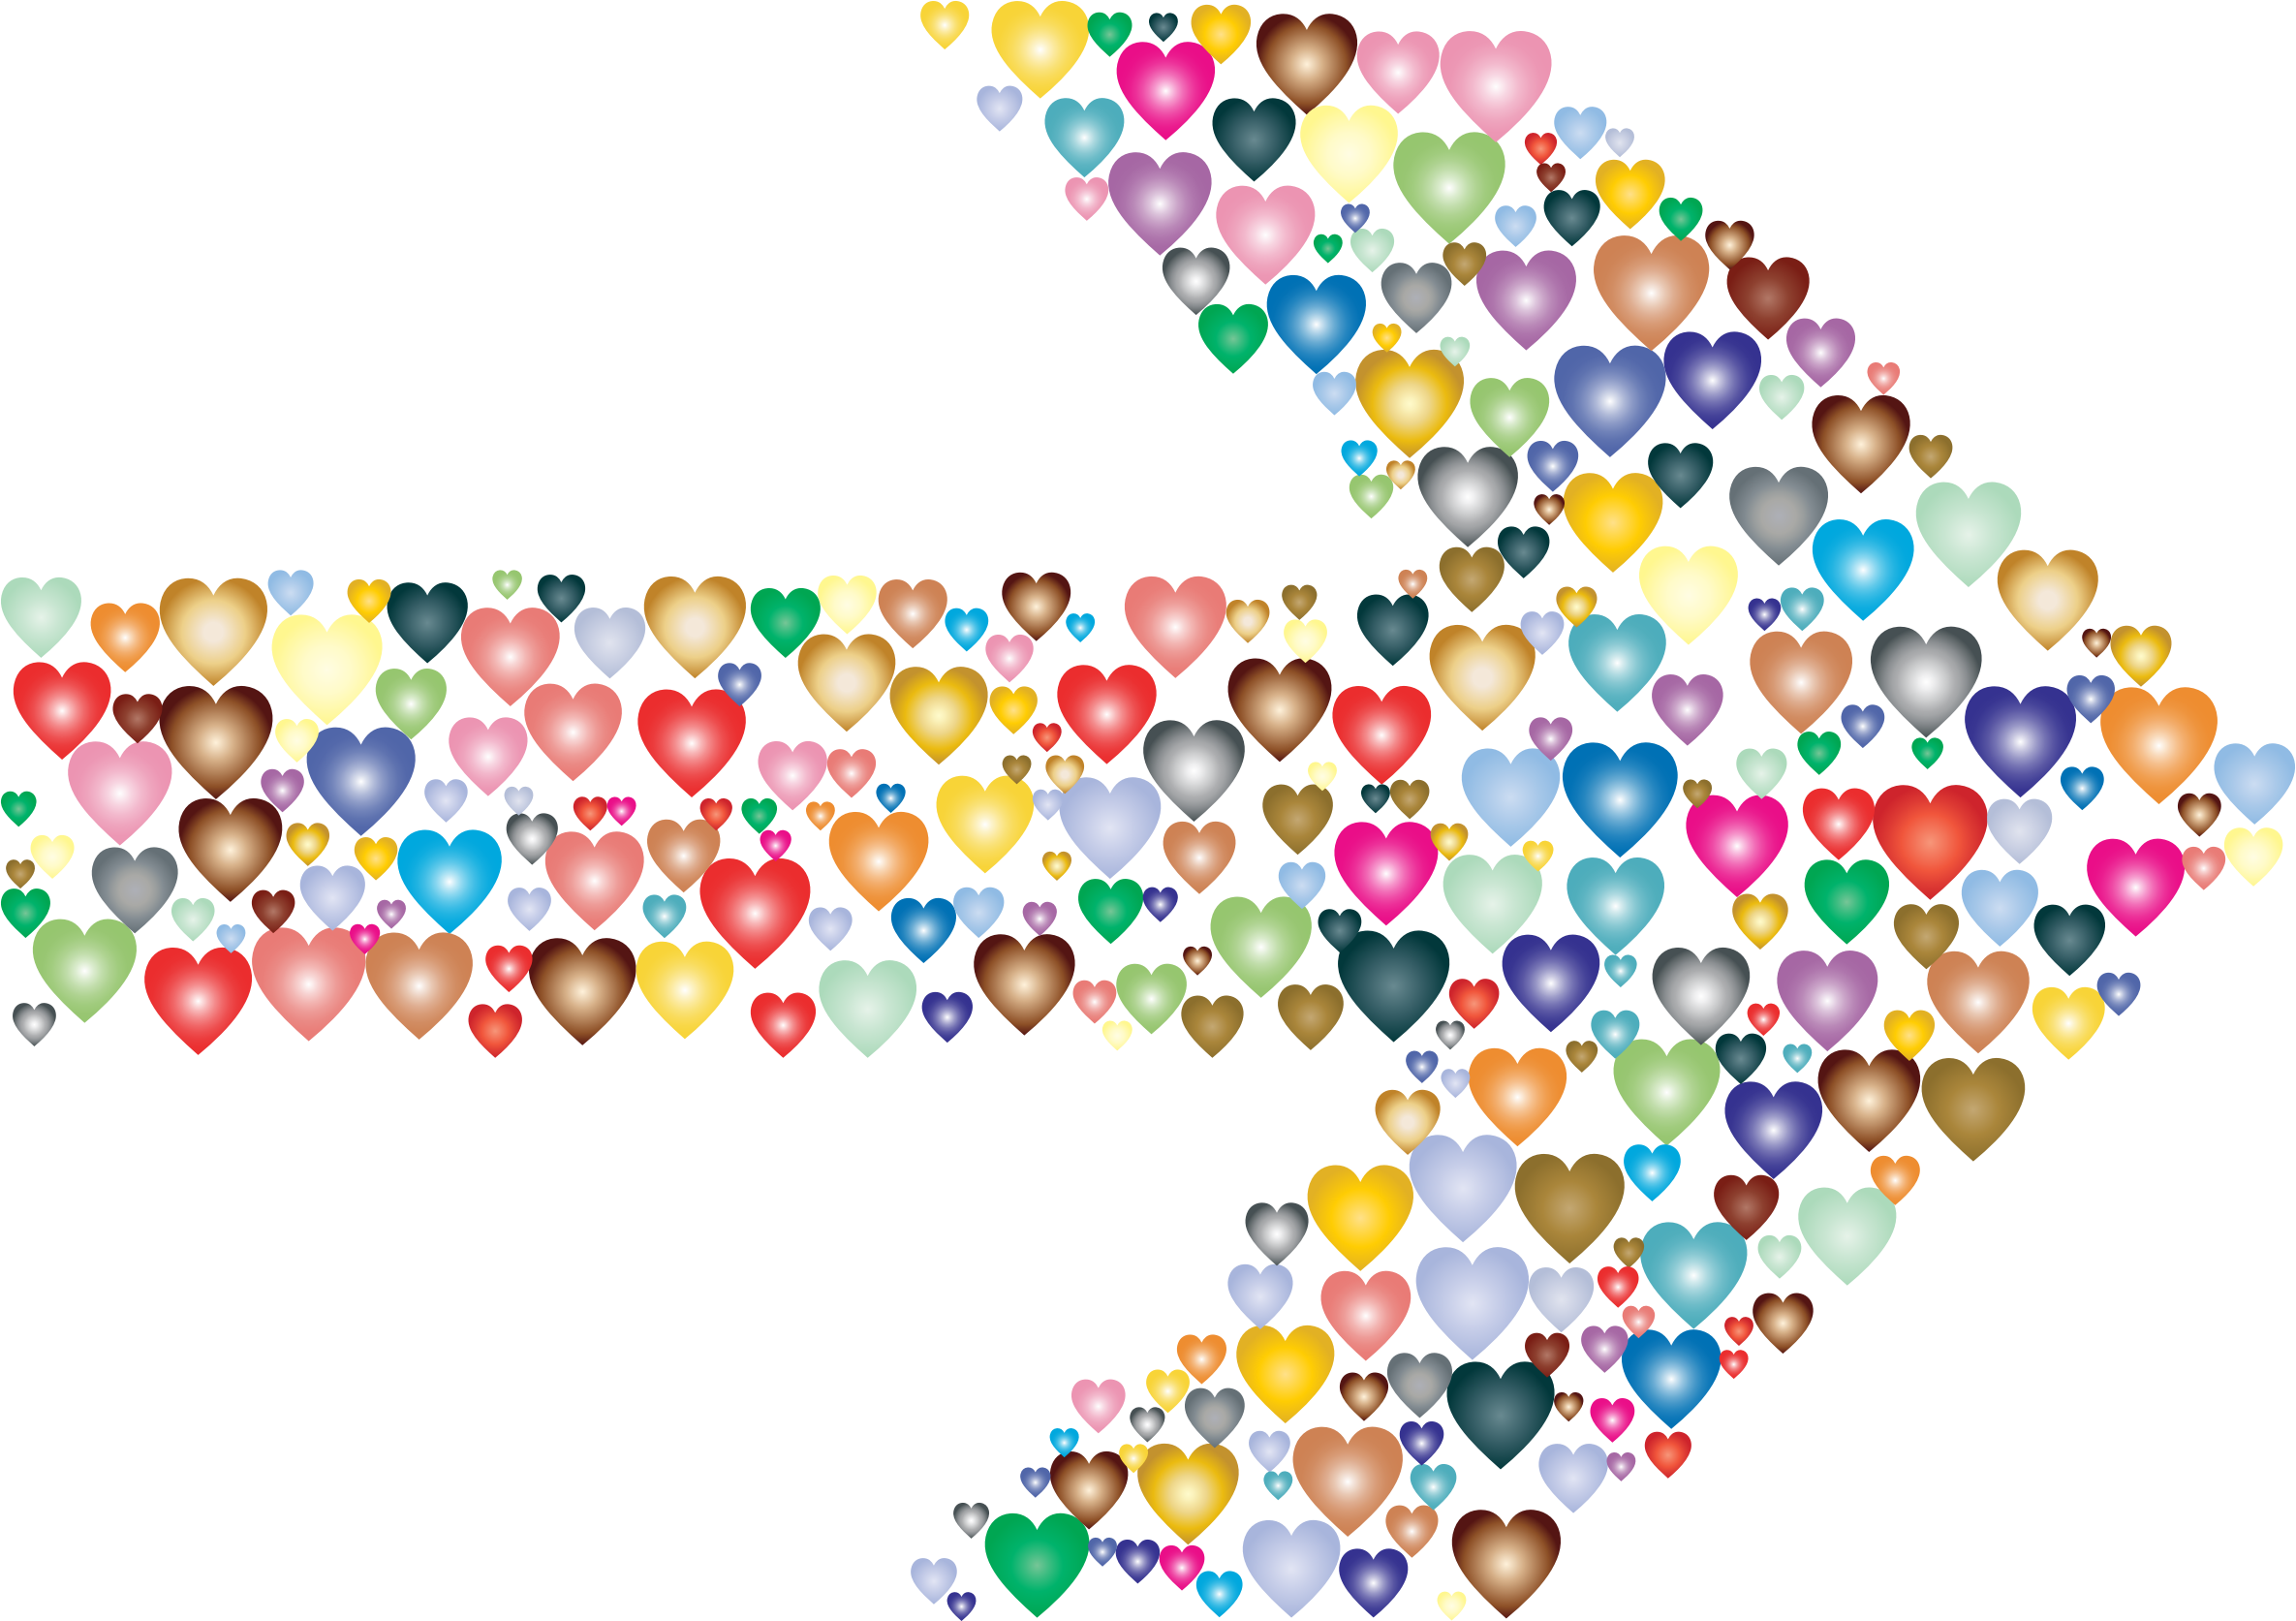 Tribal arrow clipart heart vector freeuse download Colorful Hearts Arrow 2 Icons PNG - Free PNG and Icons Downloads vector freeuse download